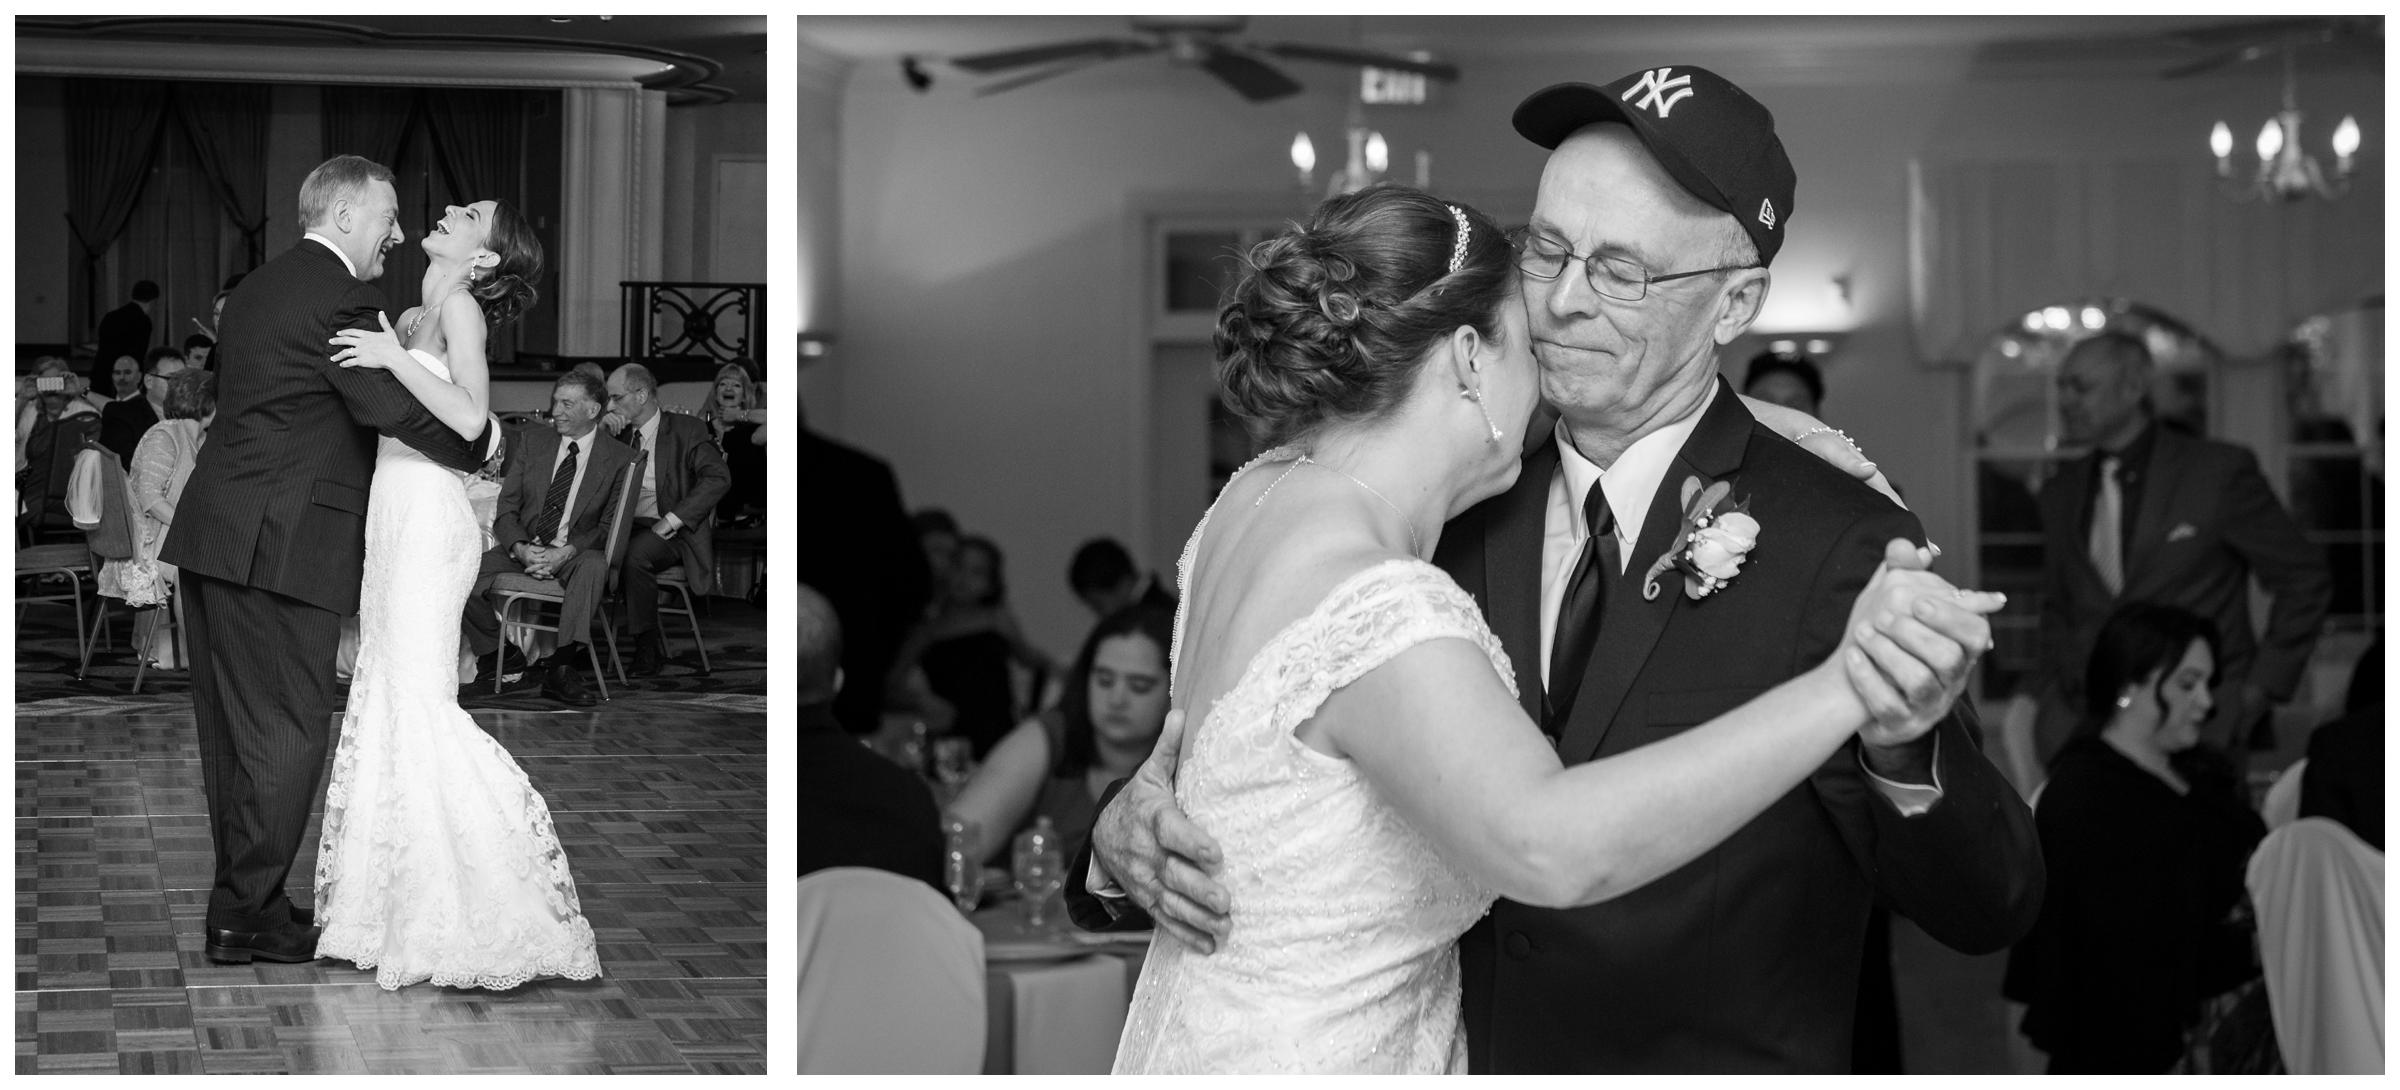 laughter and crying during father daughter dance at wedding reception